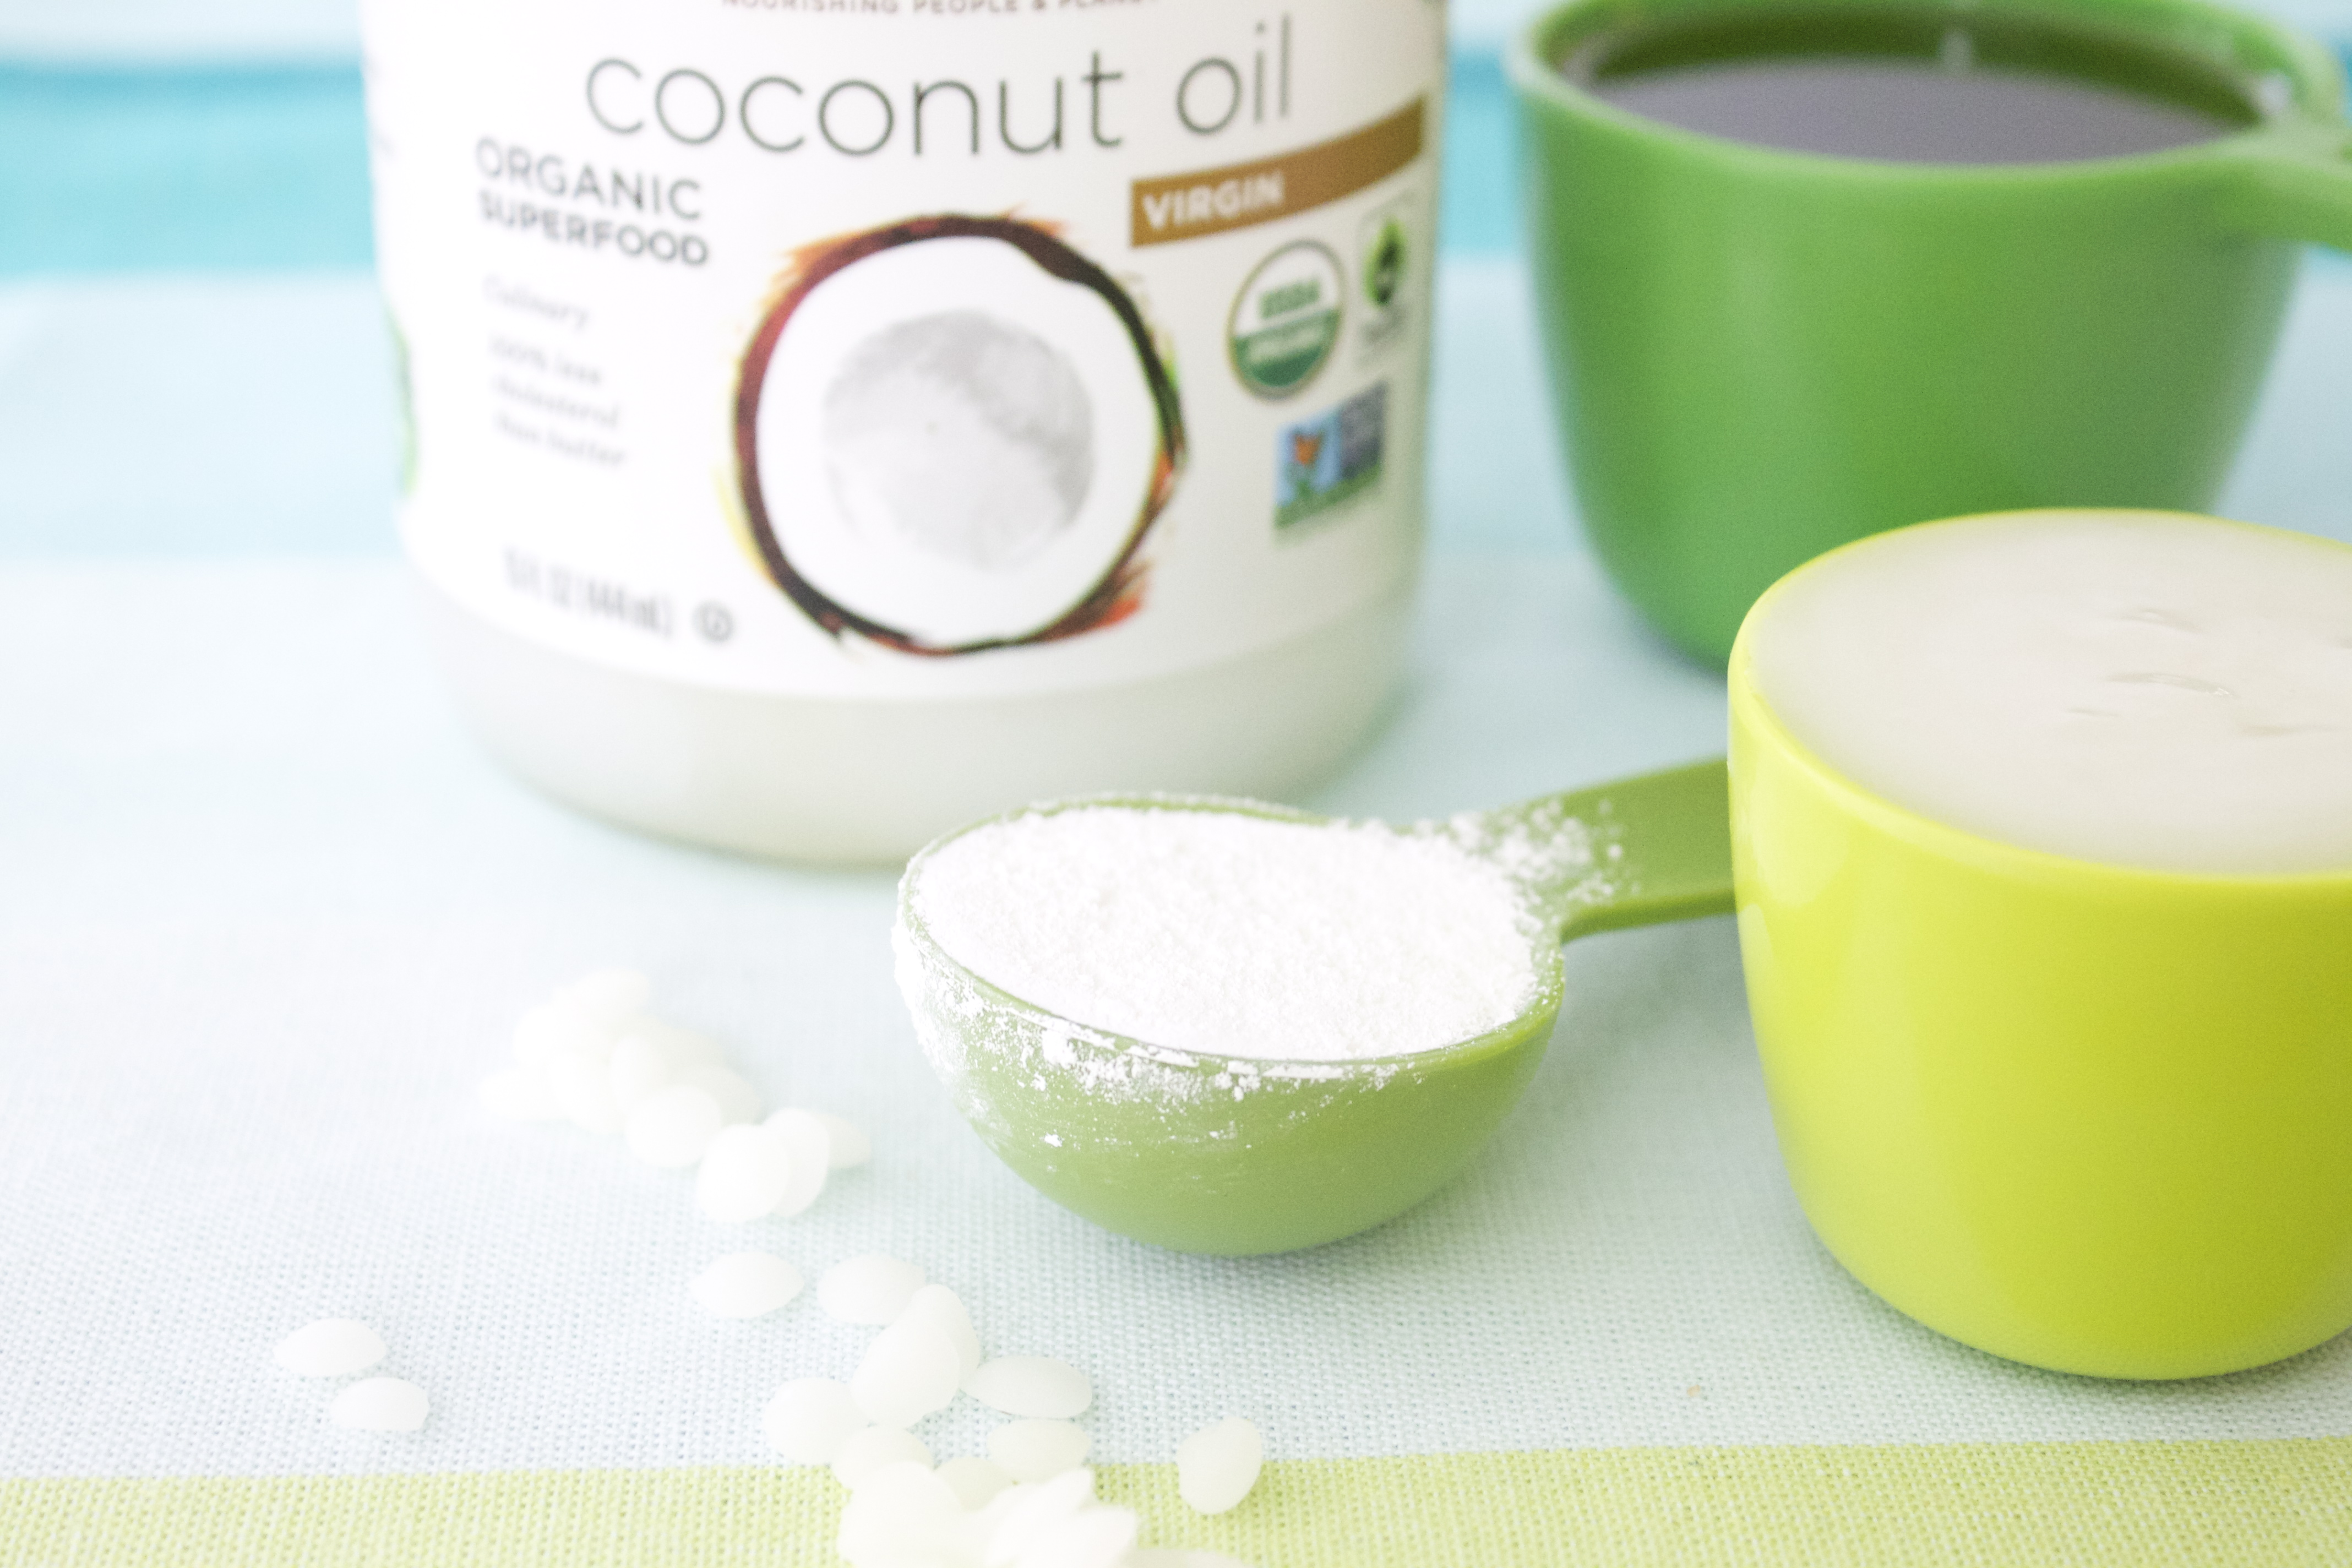 Vir: http://kitchen.nutiva.com/diy-sunscreen-made-with-coconut-oil/